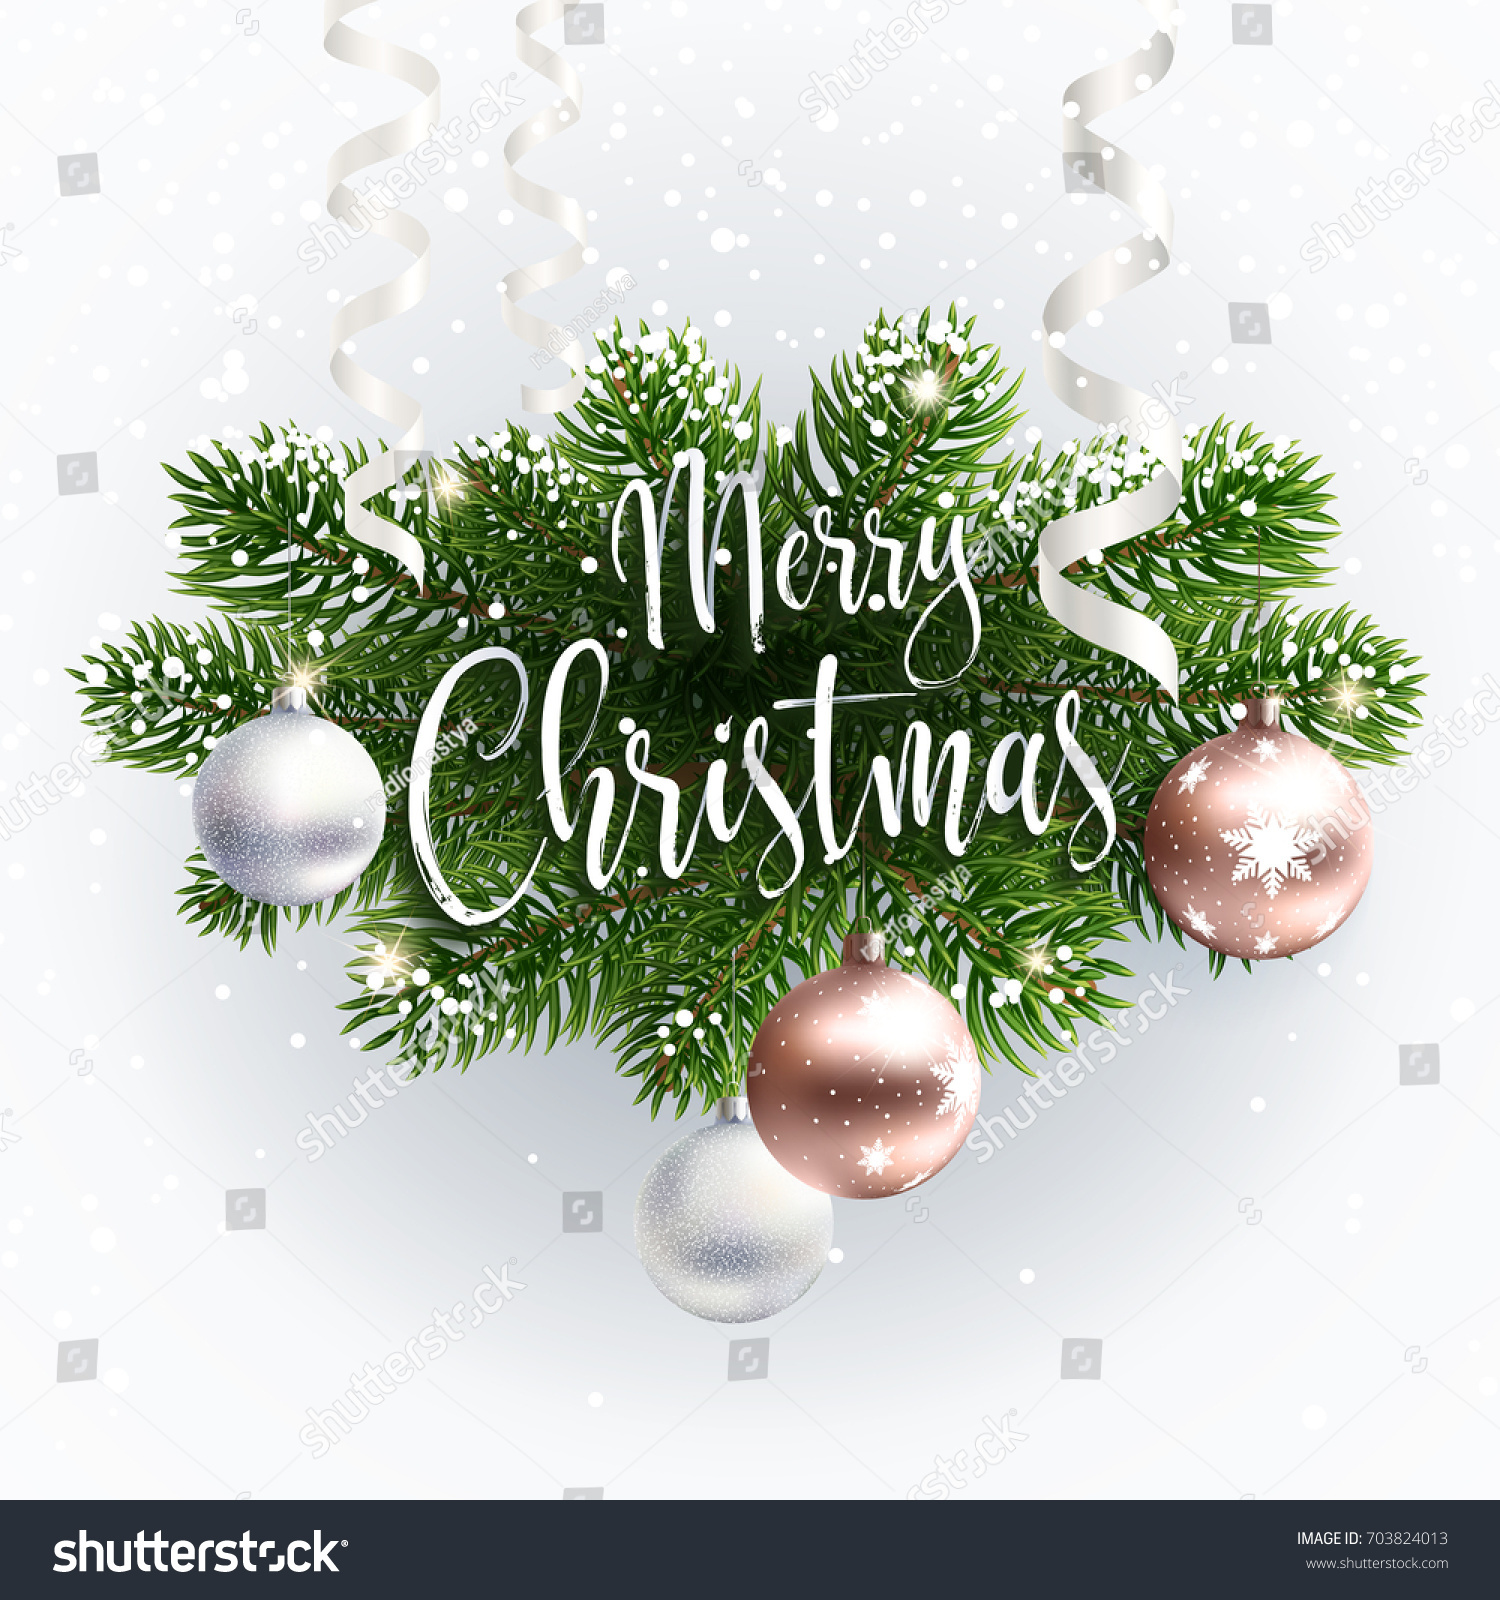 Merry Christmas Inscription Greeting White Festive Background With Typography And Tree Branches Balls